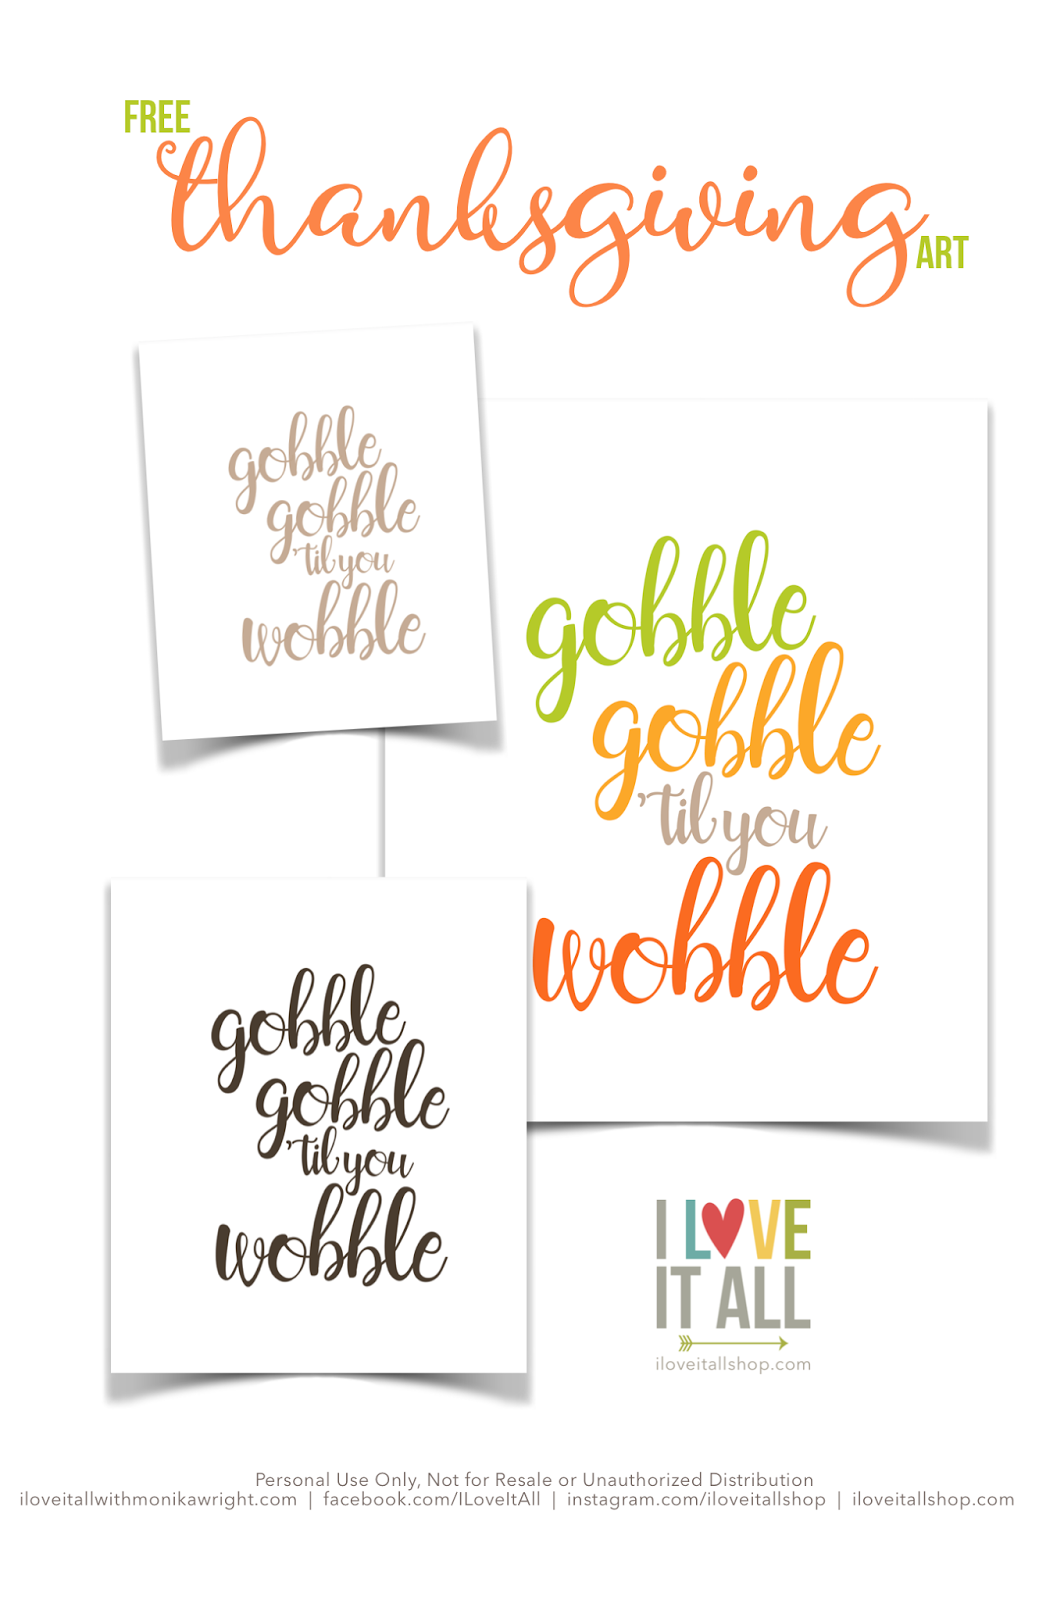 #free #thanksgiving #art #print #gobble #home #decor #printable #download #diy #family #together #fall #decorating